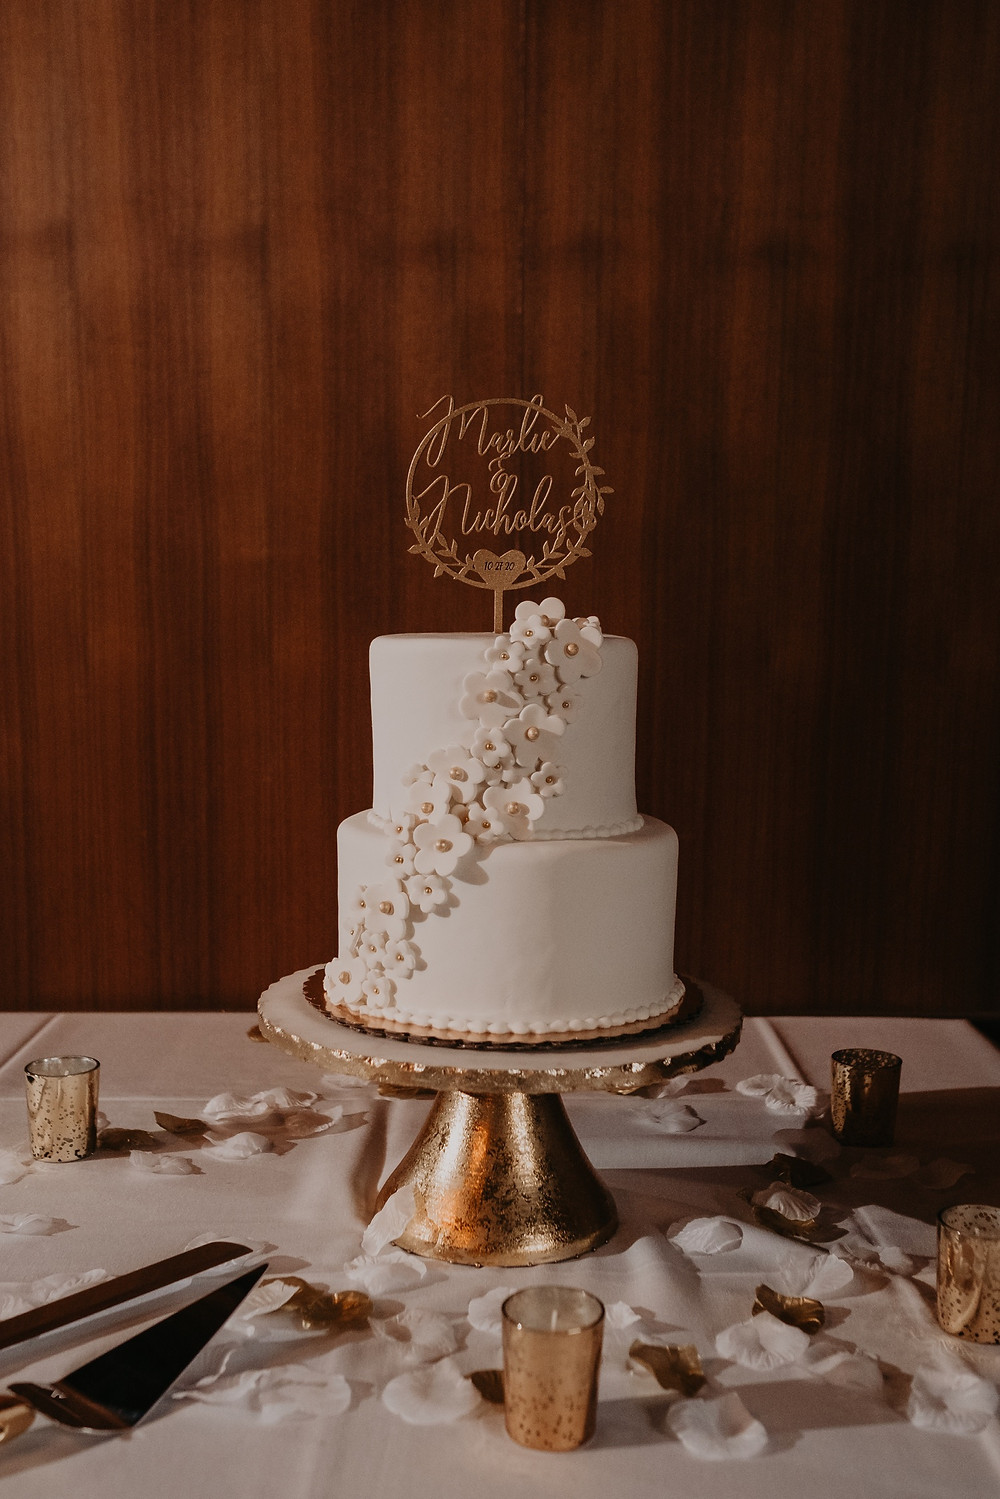 Two tie wedding cake in Metro Detroit. Photographed by Nicole Leanne Photography.